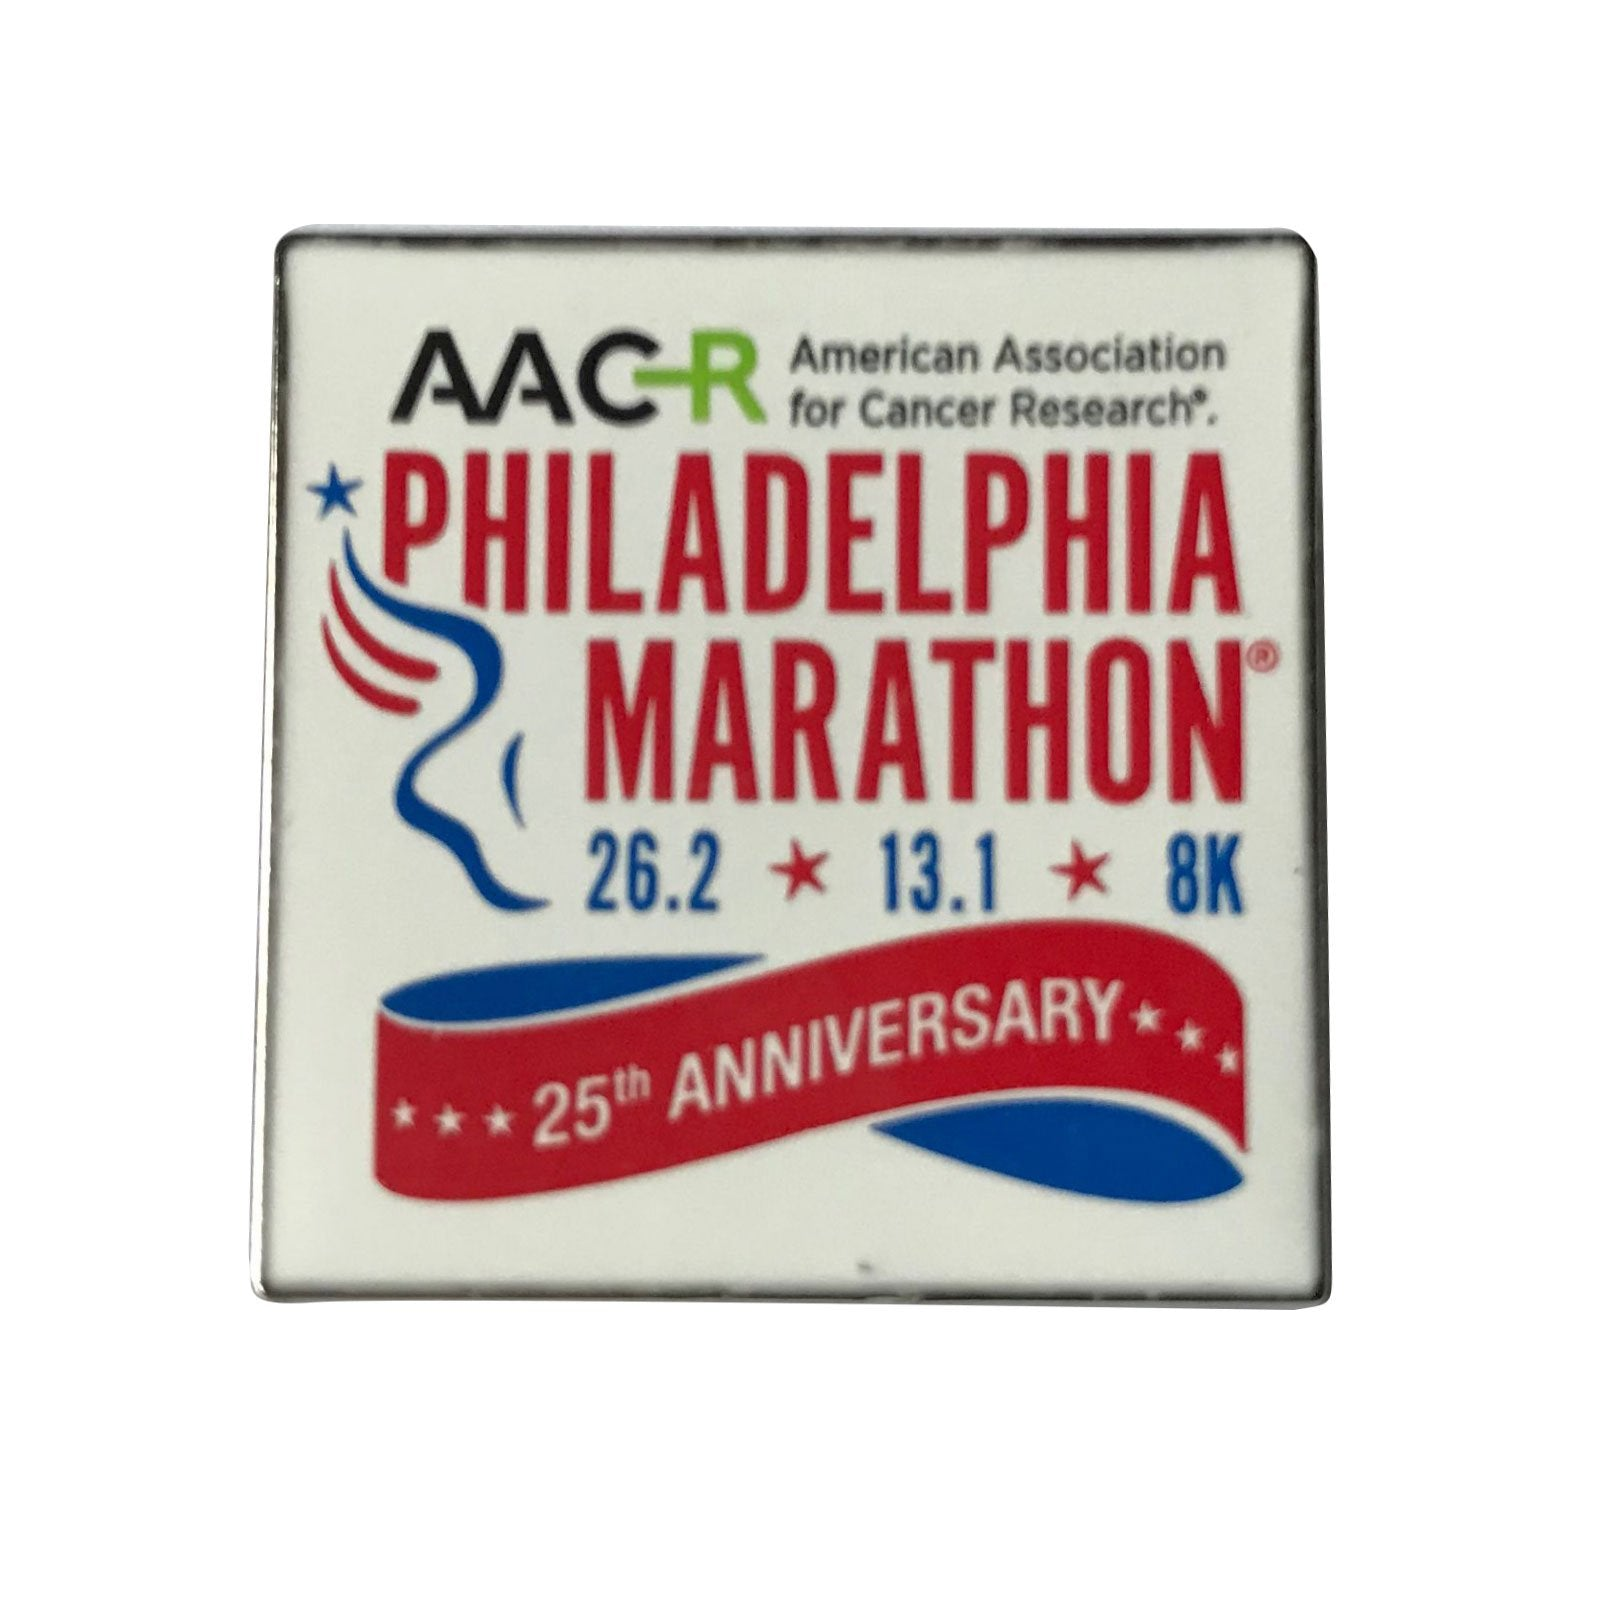 AACR Philadelphia Marathon '25th Anniversary' Hard Enamel Pin - White